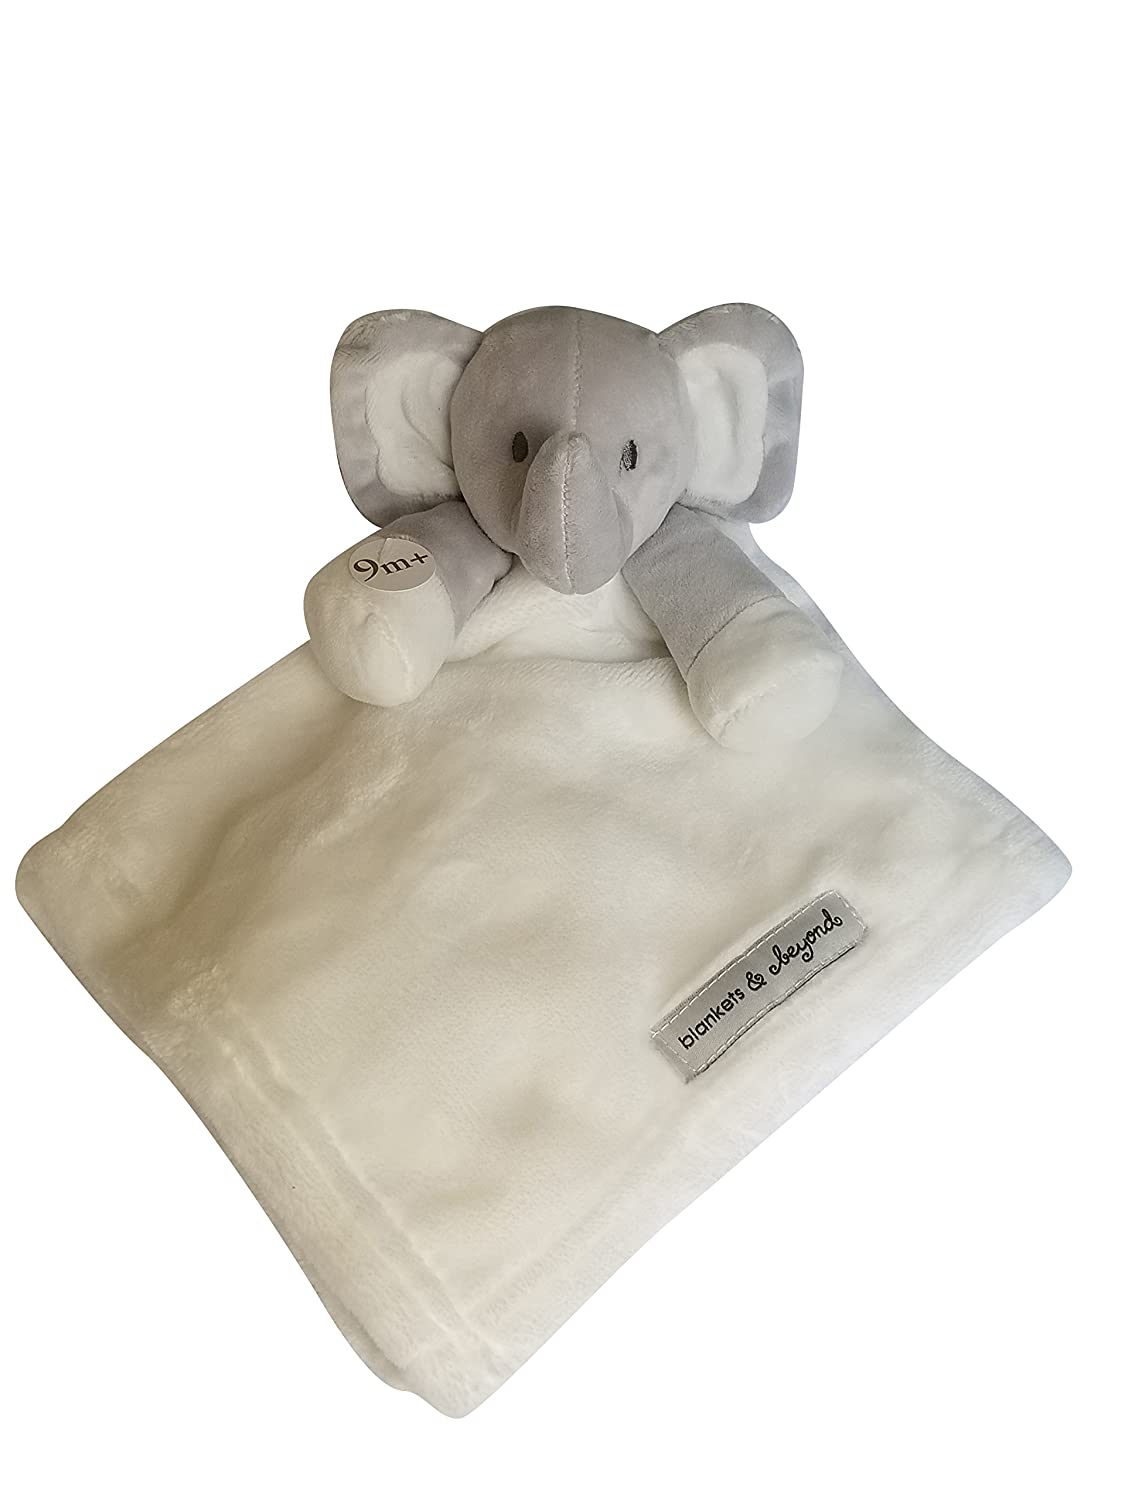 Blankets and Beyond Grey and White Elephant with White Security Blanket Lovey